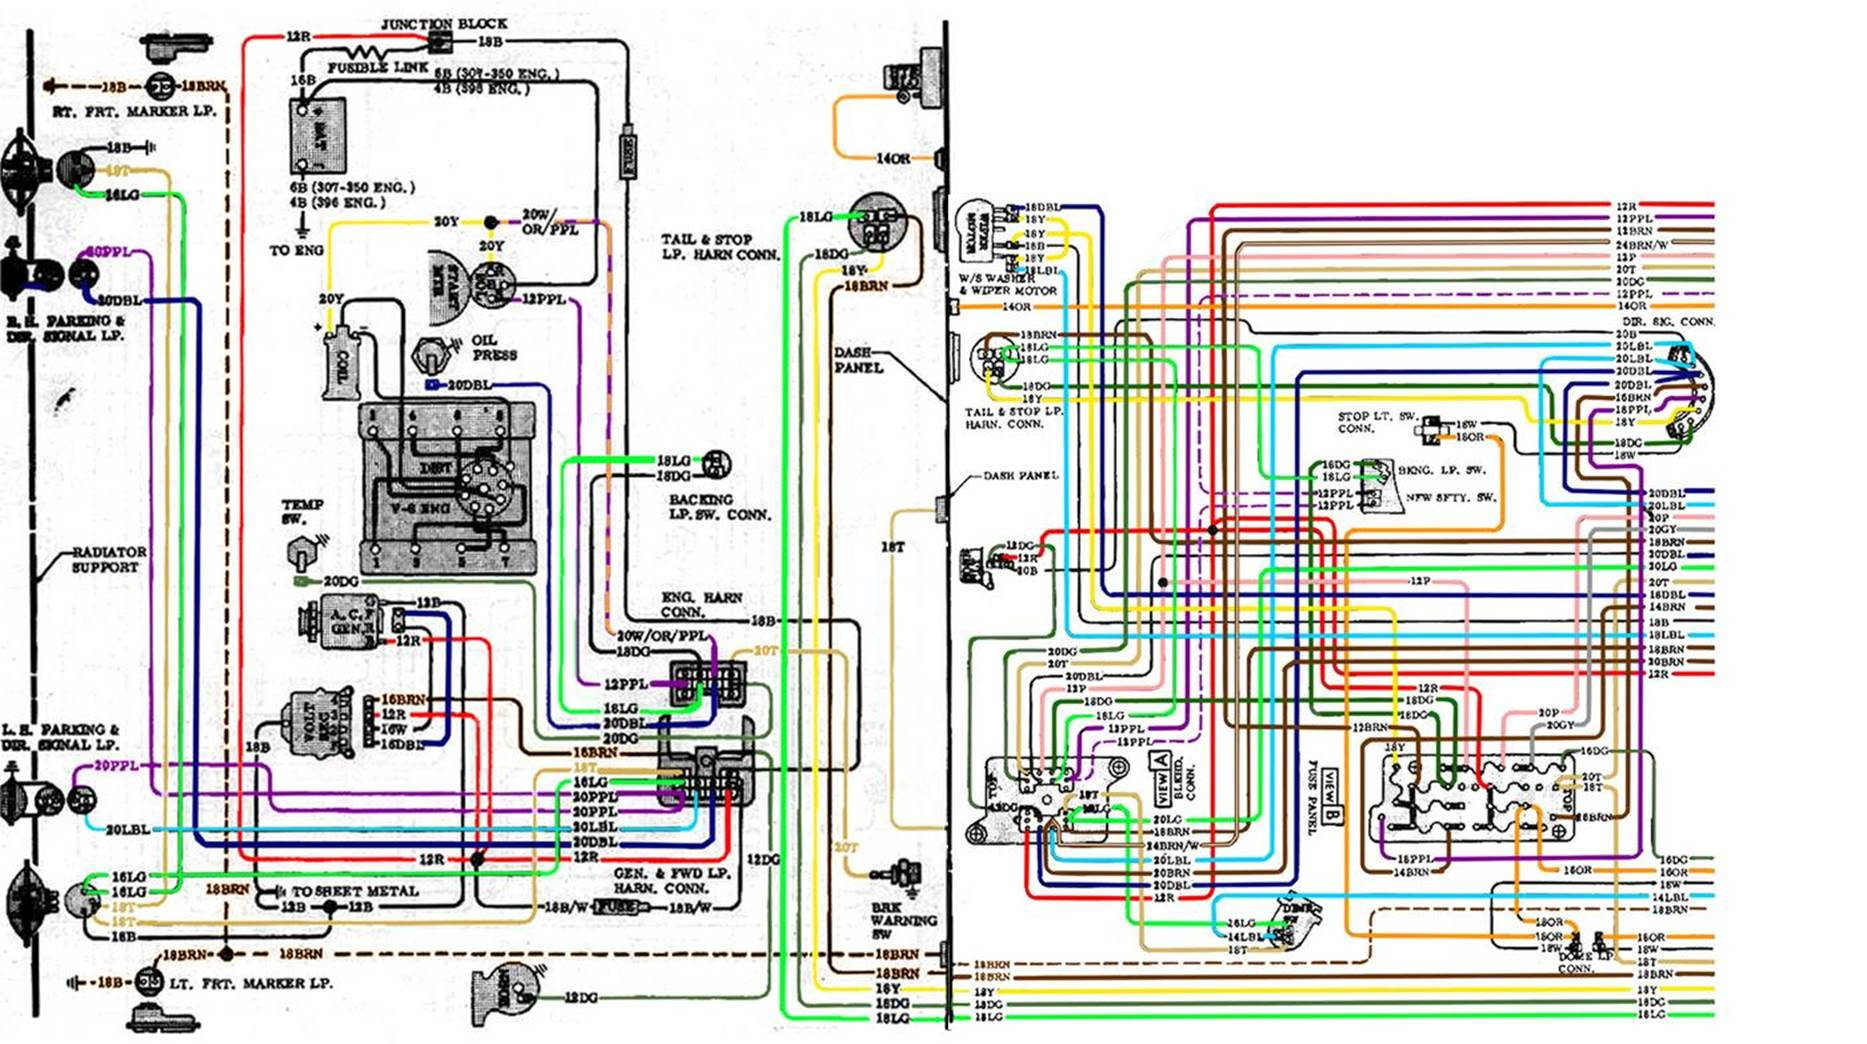 image002 67 72 chevy wiring diagram 67 c10 wiring harness at gsmportal.co